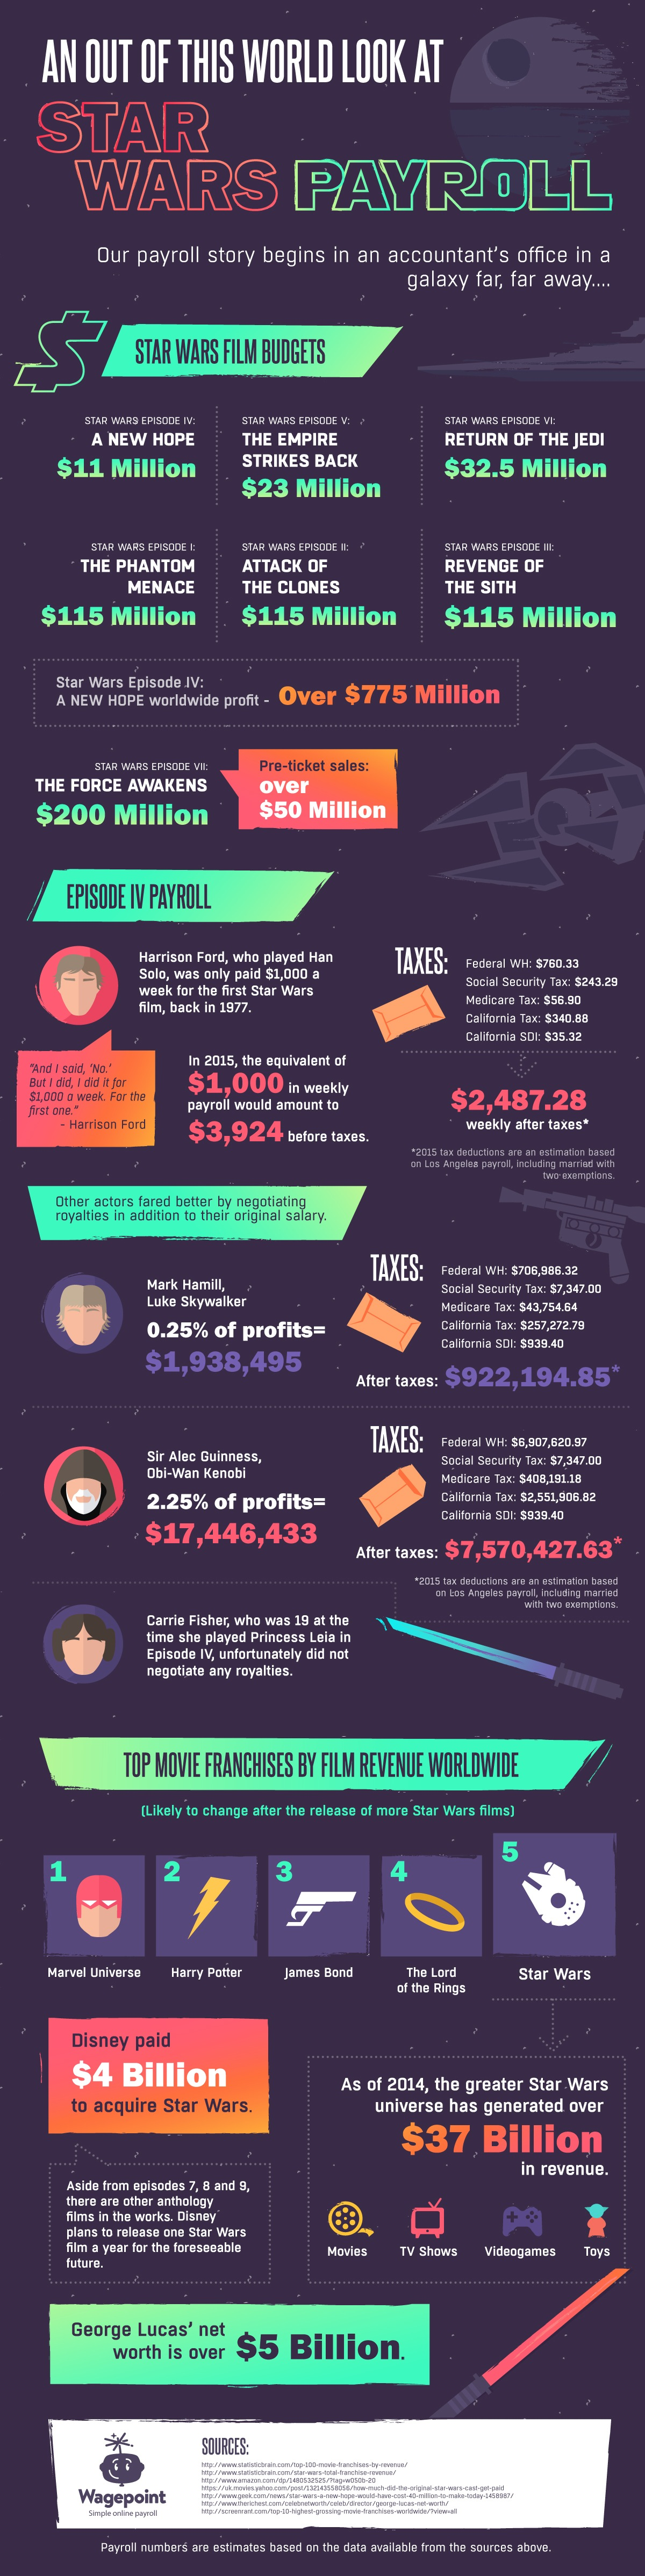 Infographic Star Wars Payroll